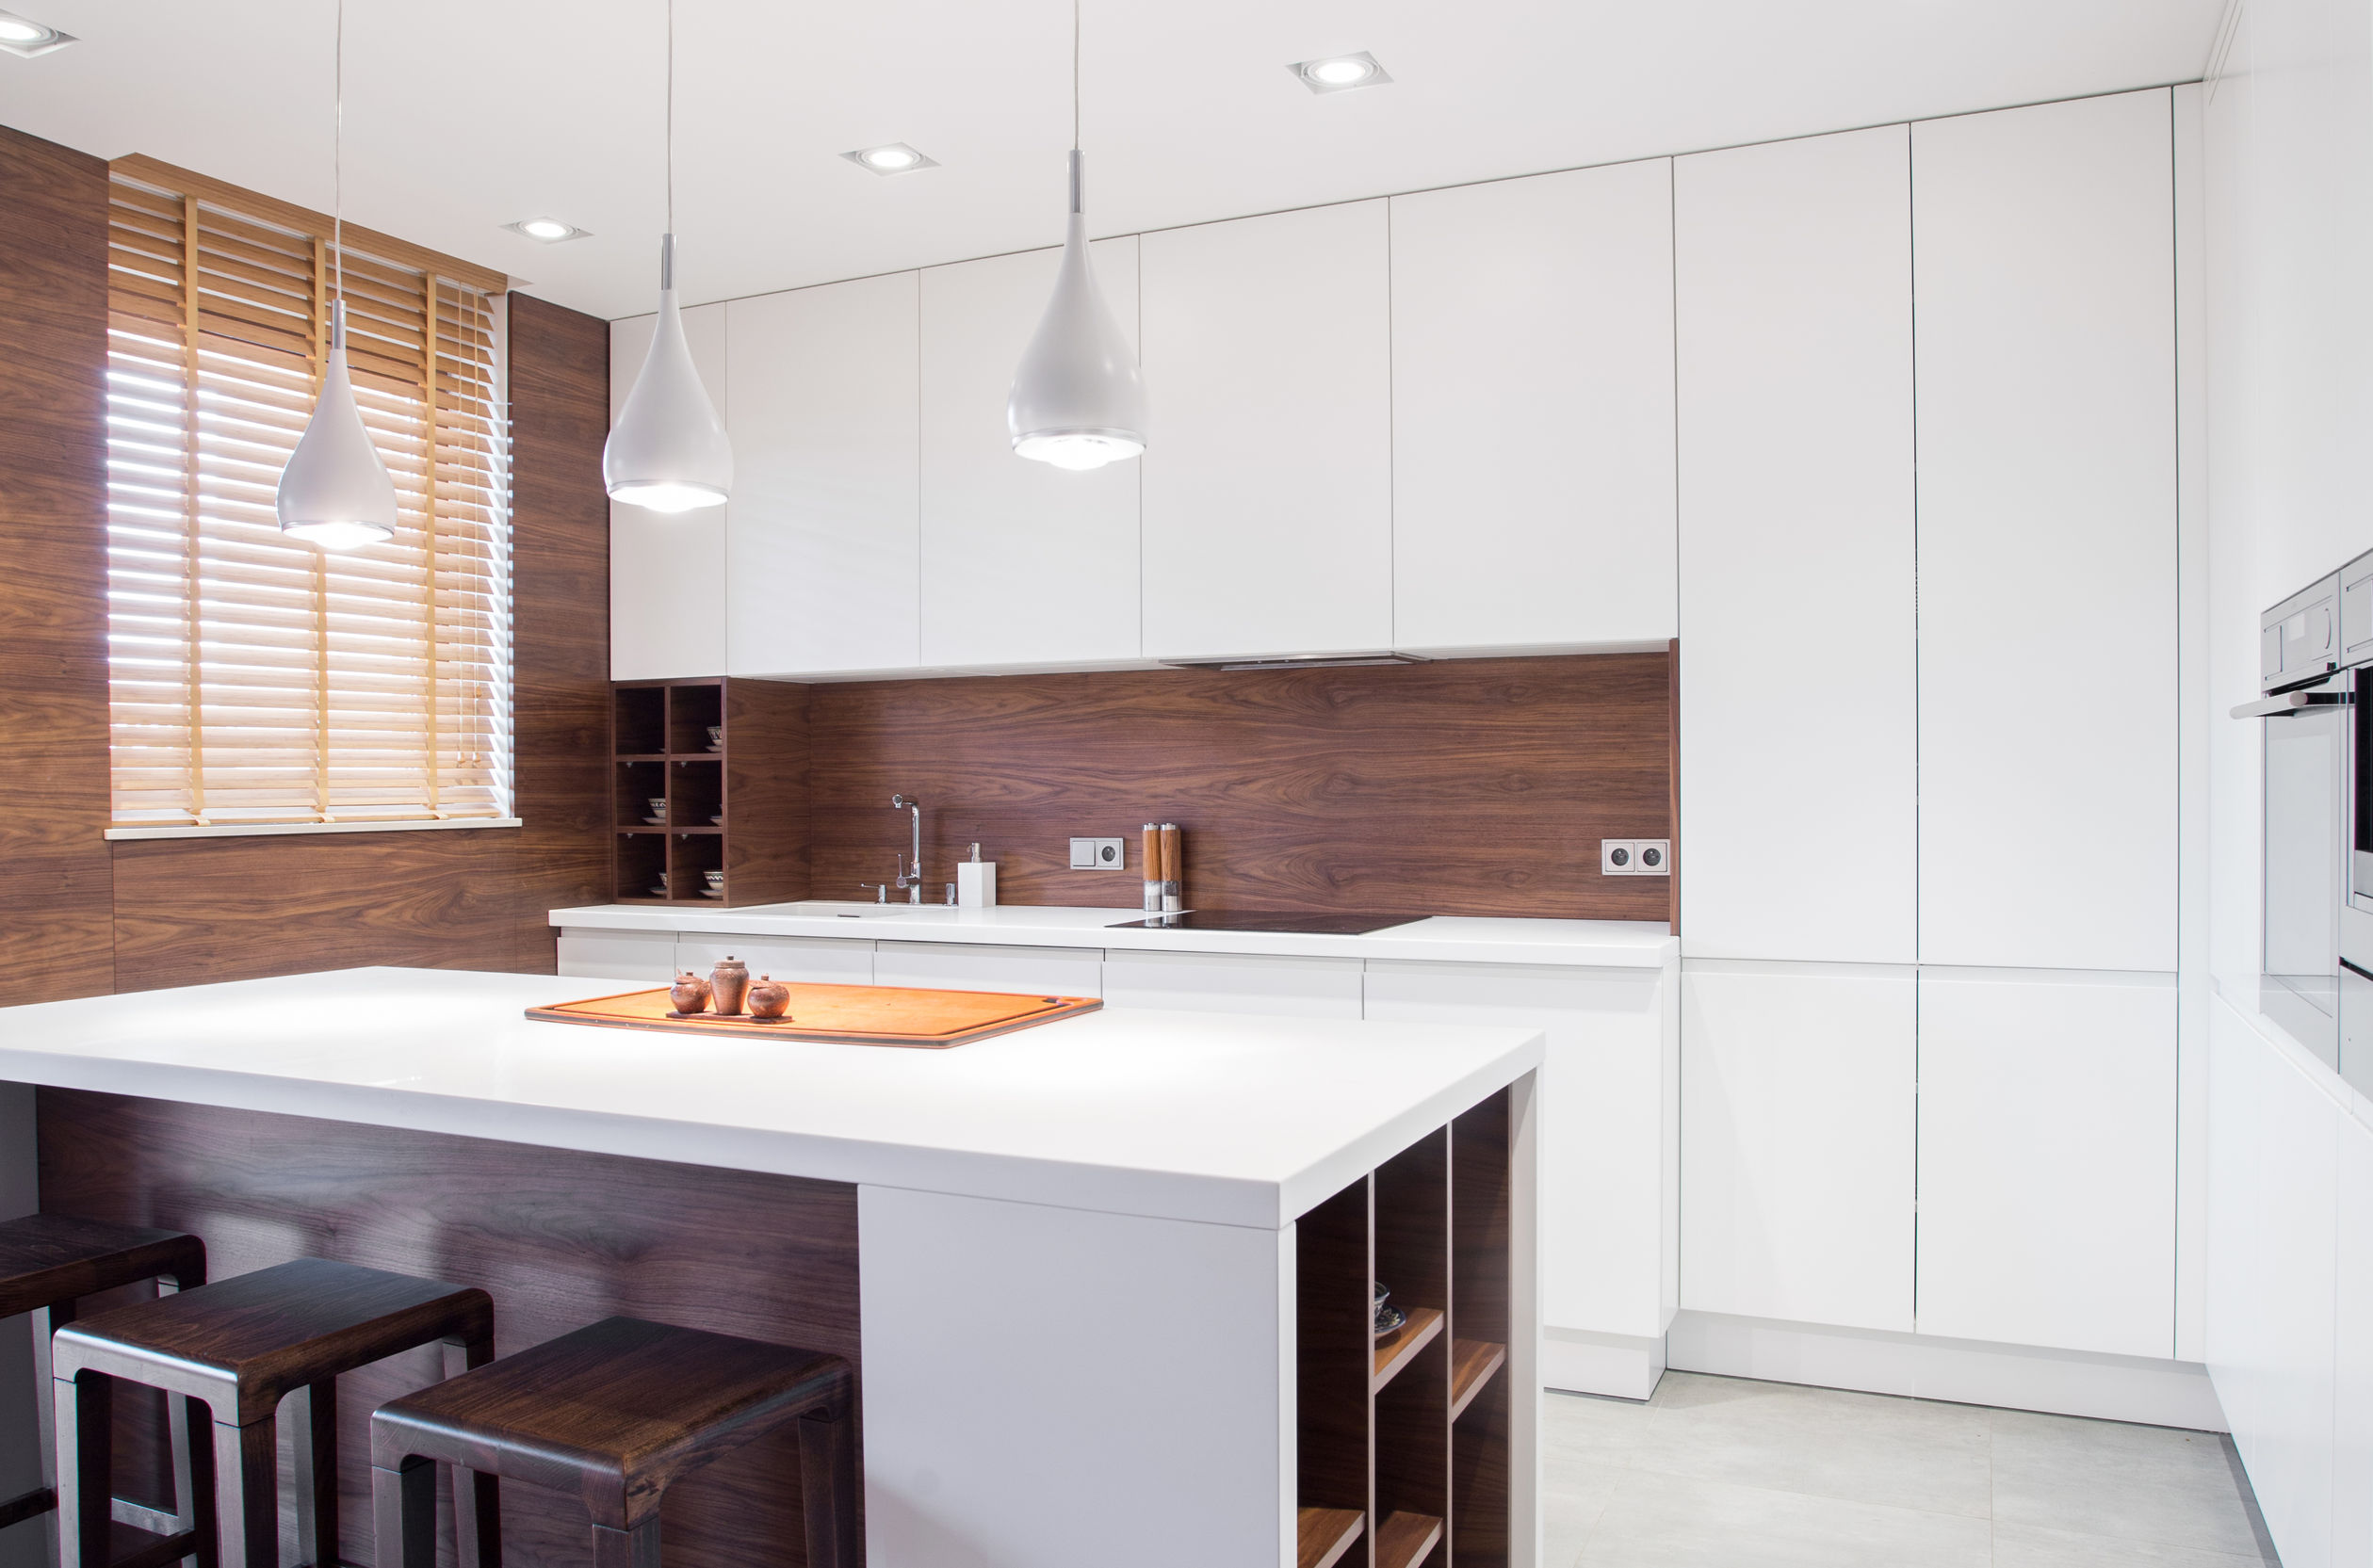 44654499 - image of modern design spacious light kitchen interior